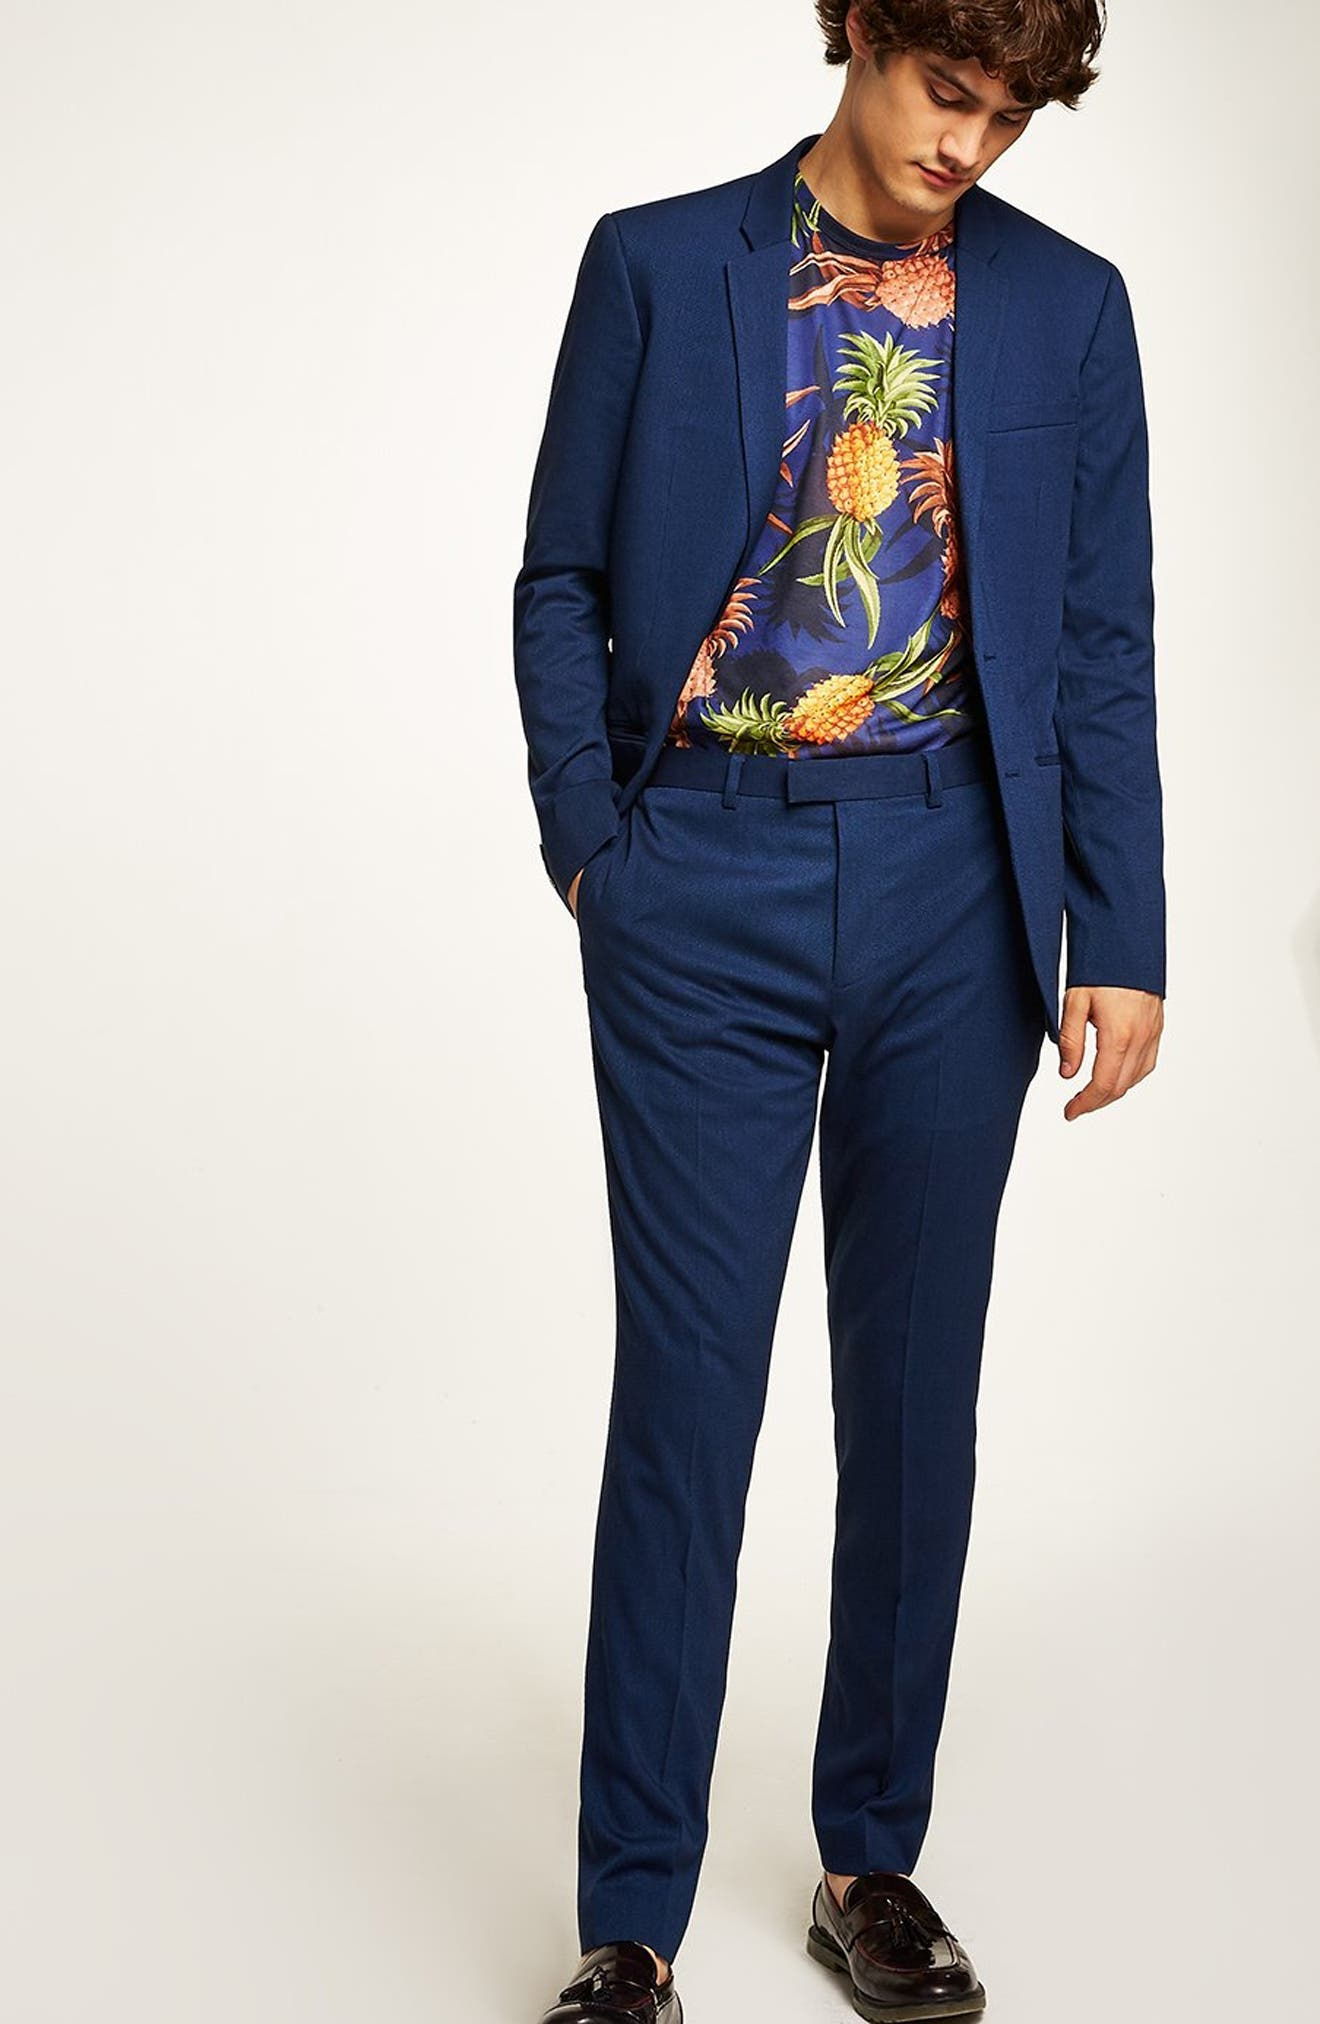 TOPMAN, Skinny Fit Suit Jacket, Alternate thumbnail 9, color, BLUE